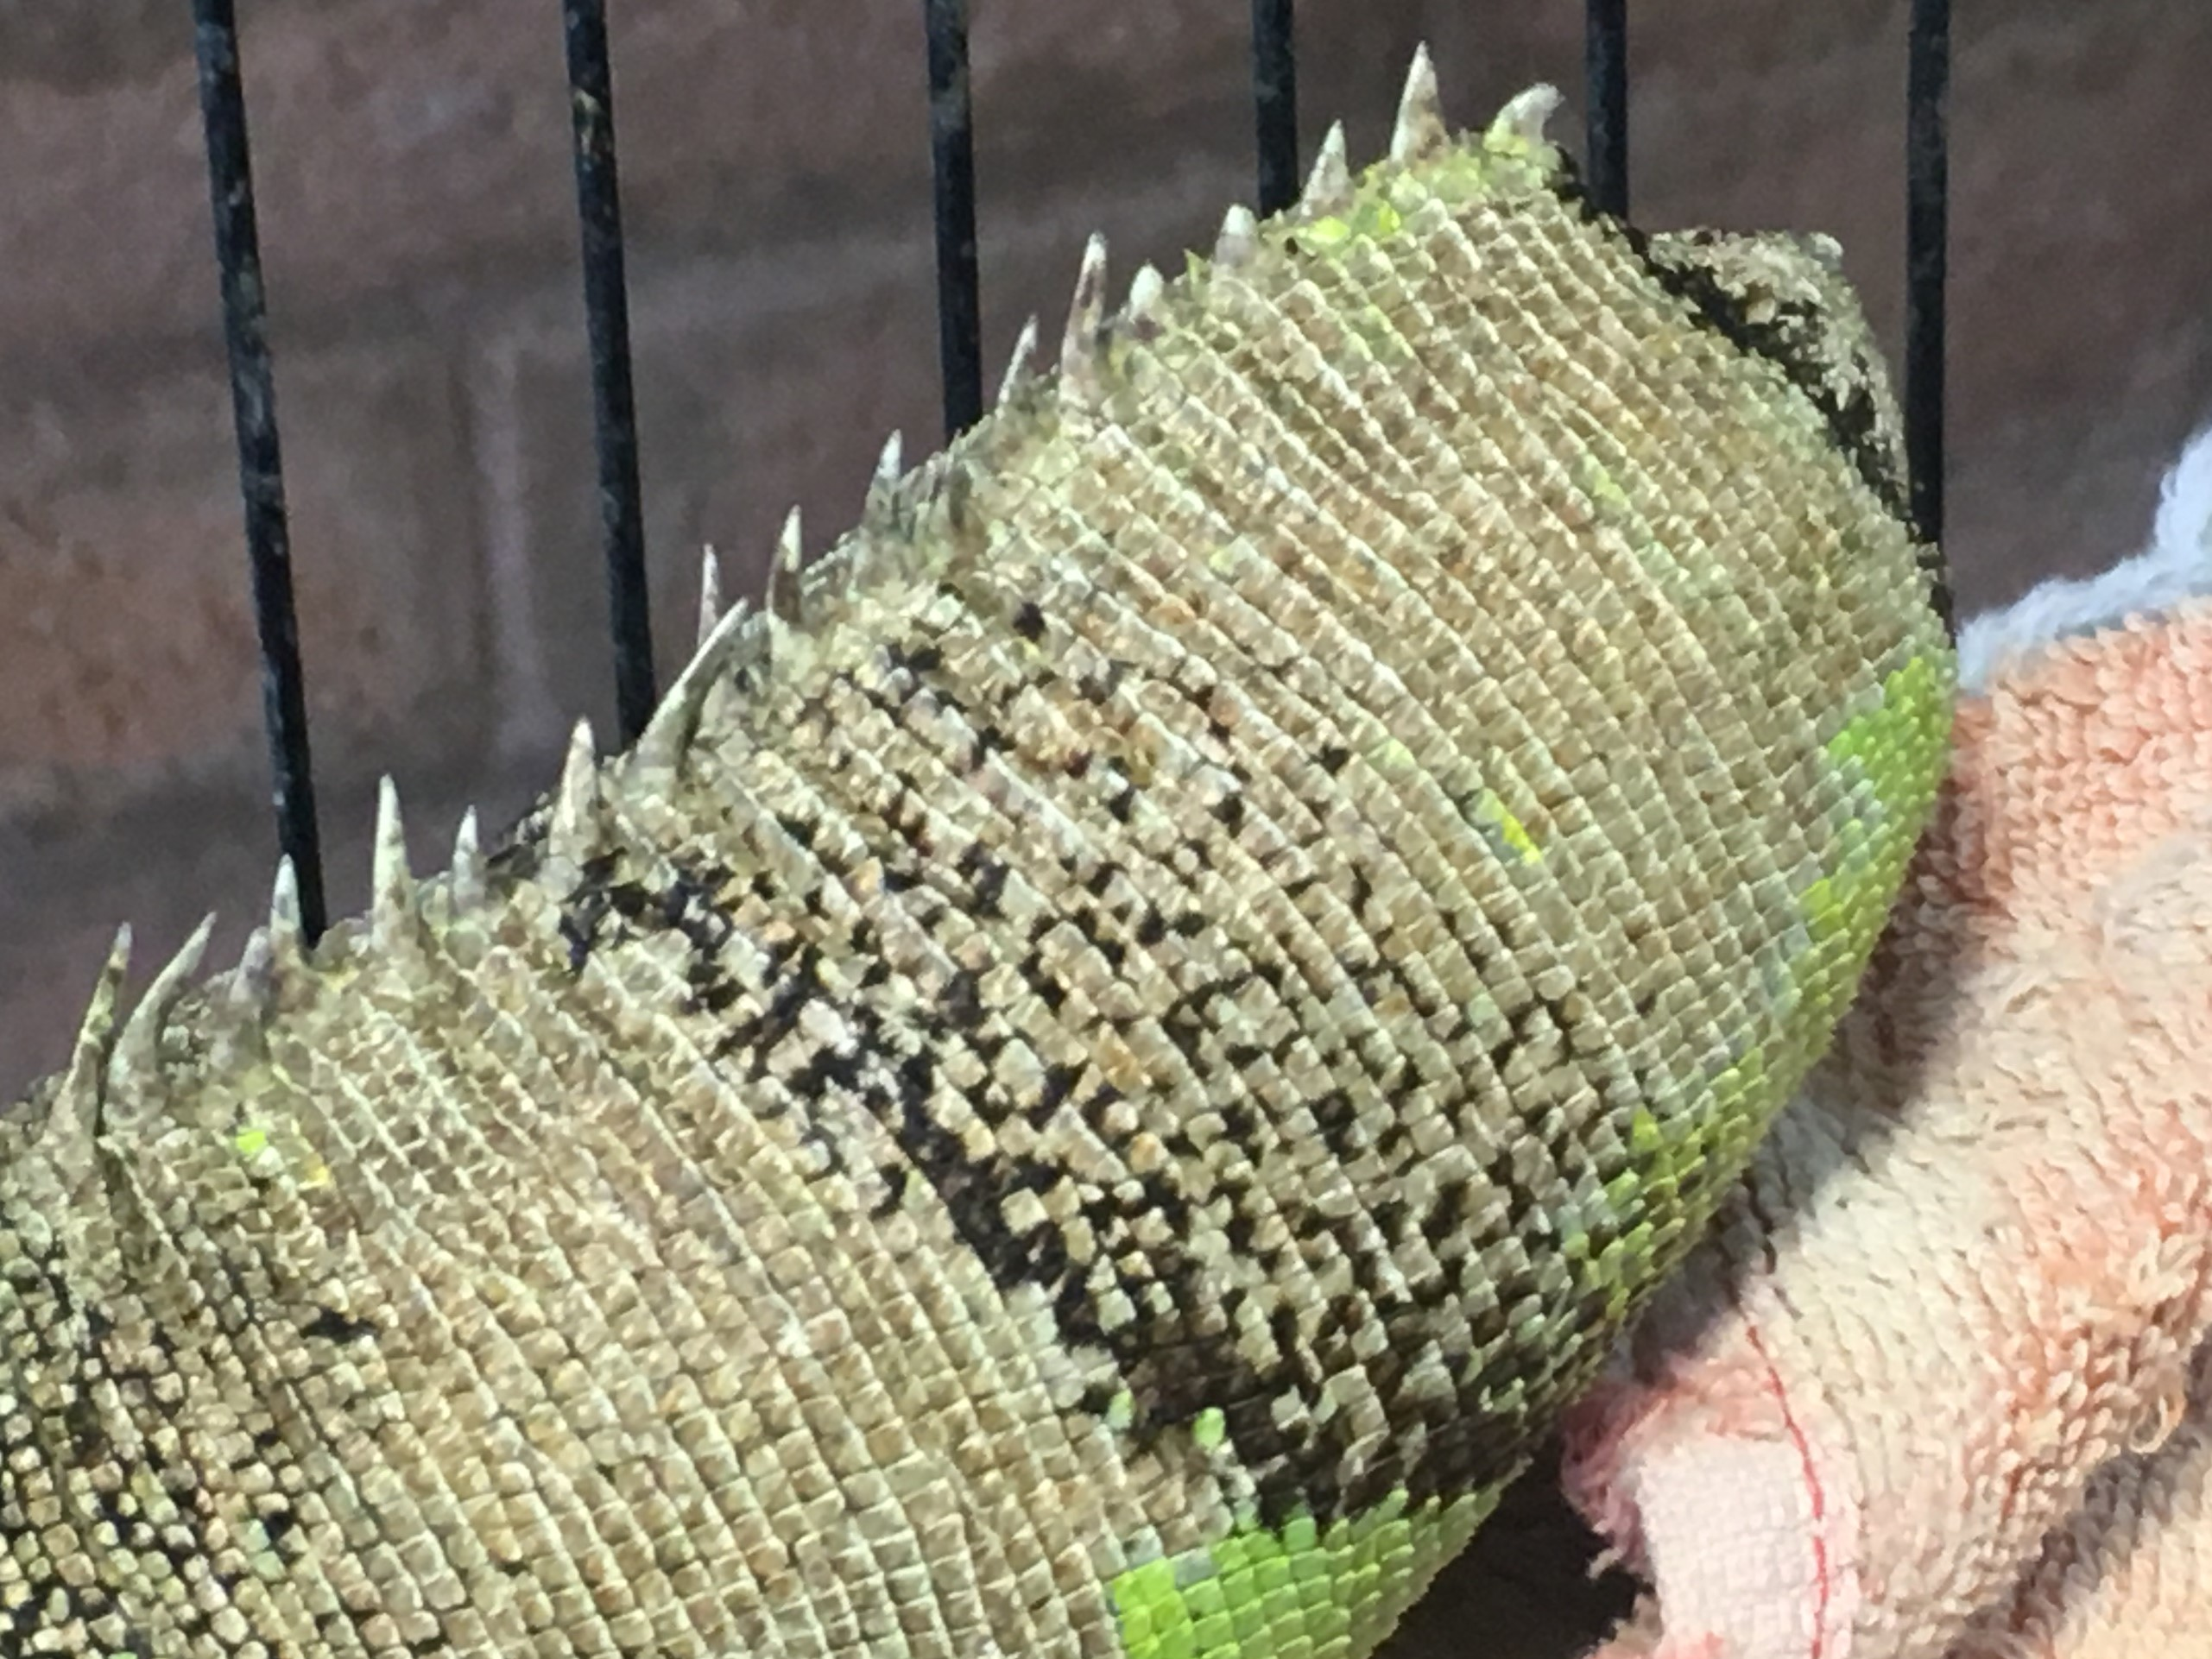 The chewed and amputated tail of a green iguana